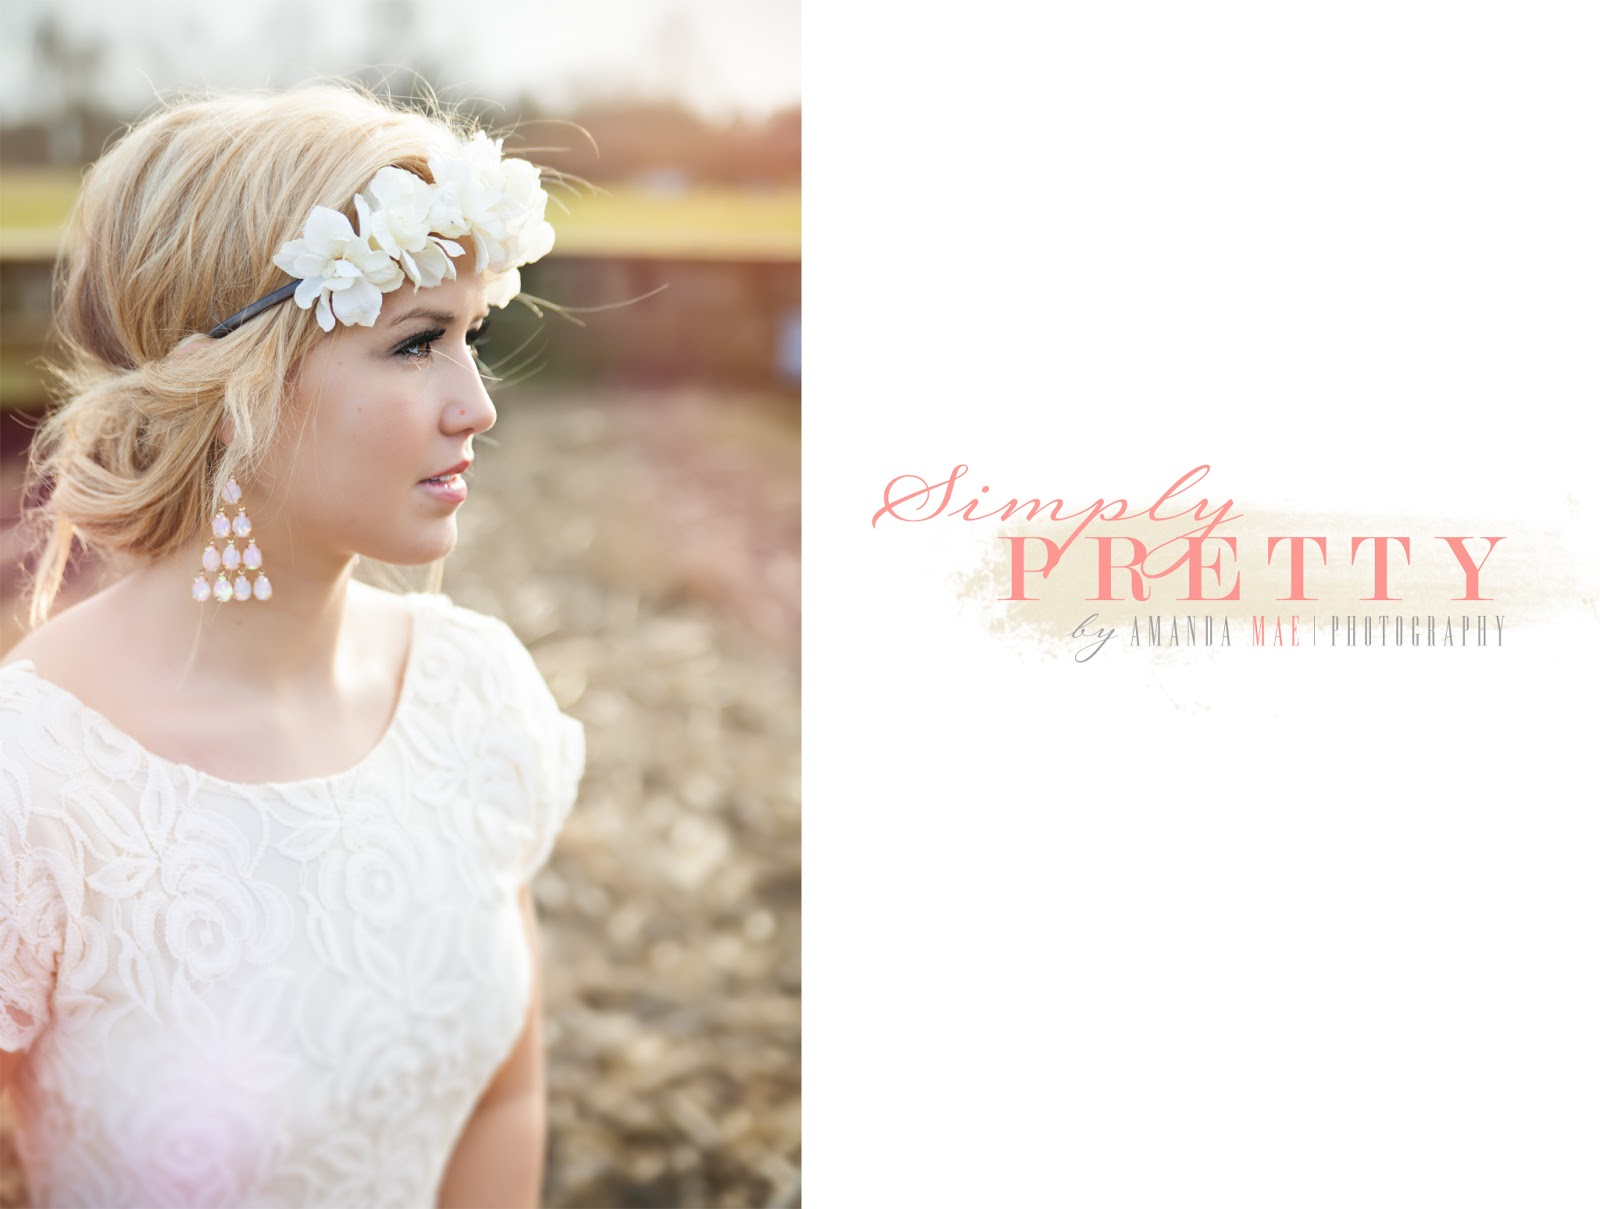 AMANDA MAE PHOTOGRAPHY Simply Pretty Amanda Mae graphy Washington Sen